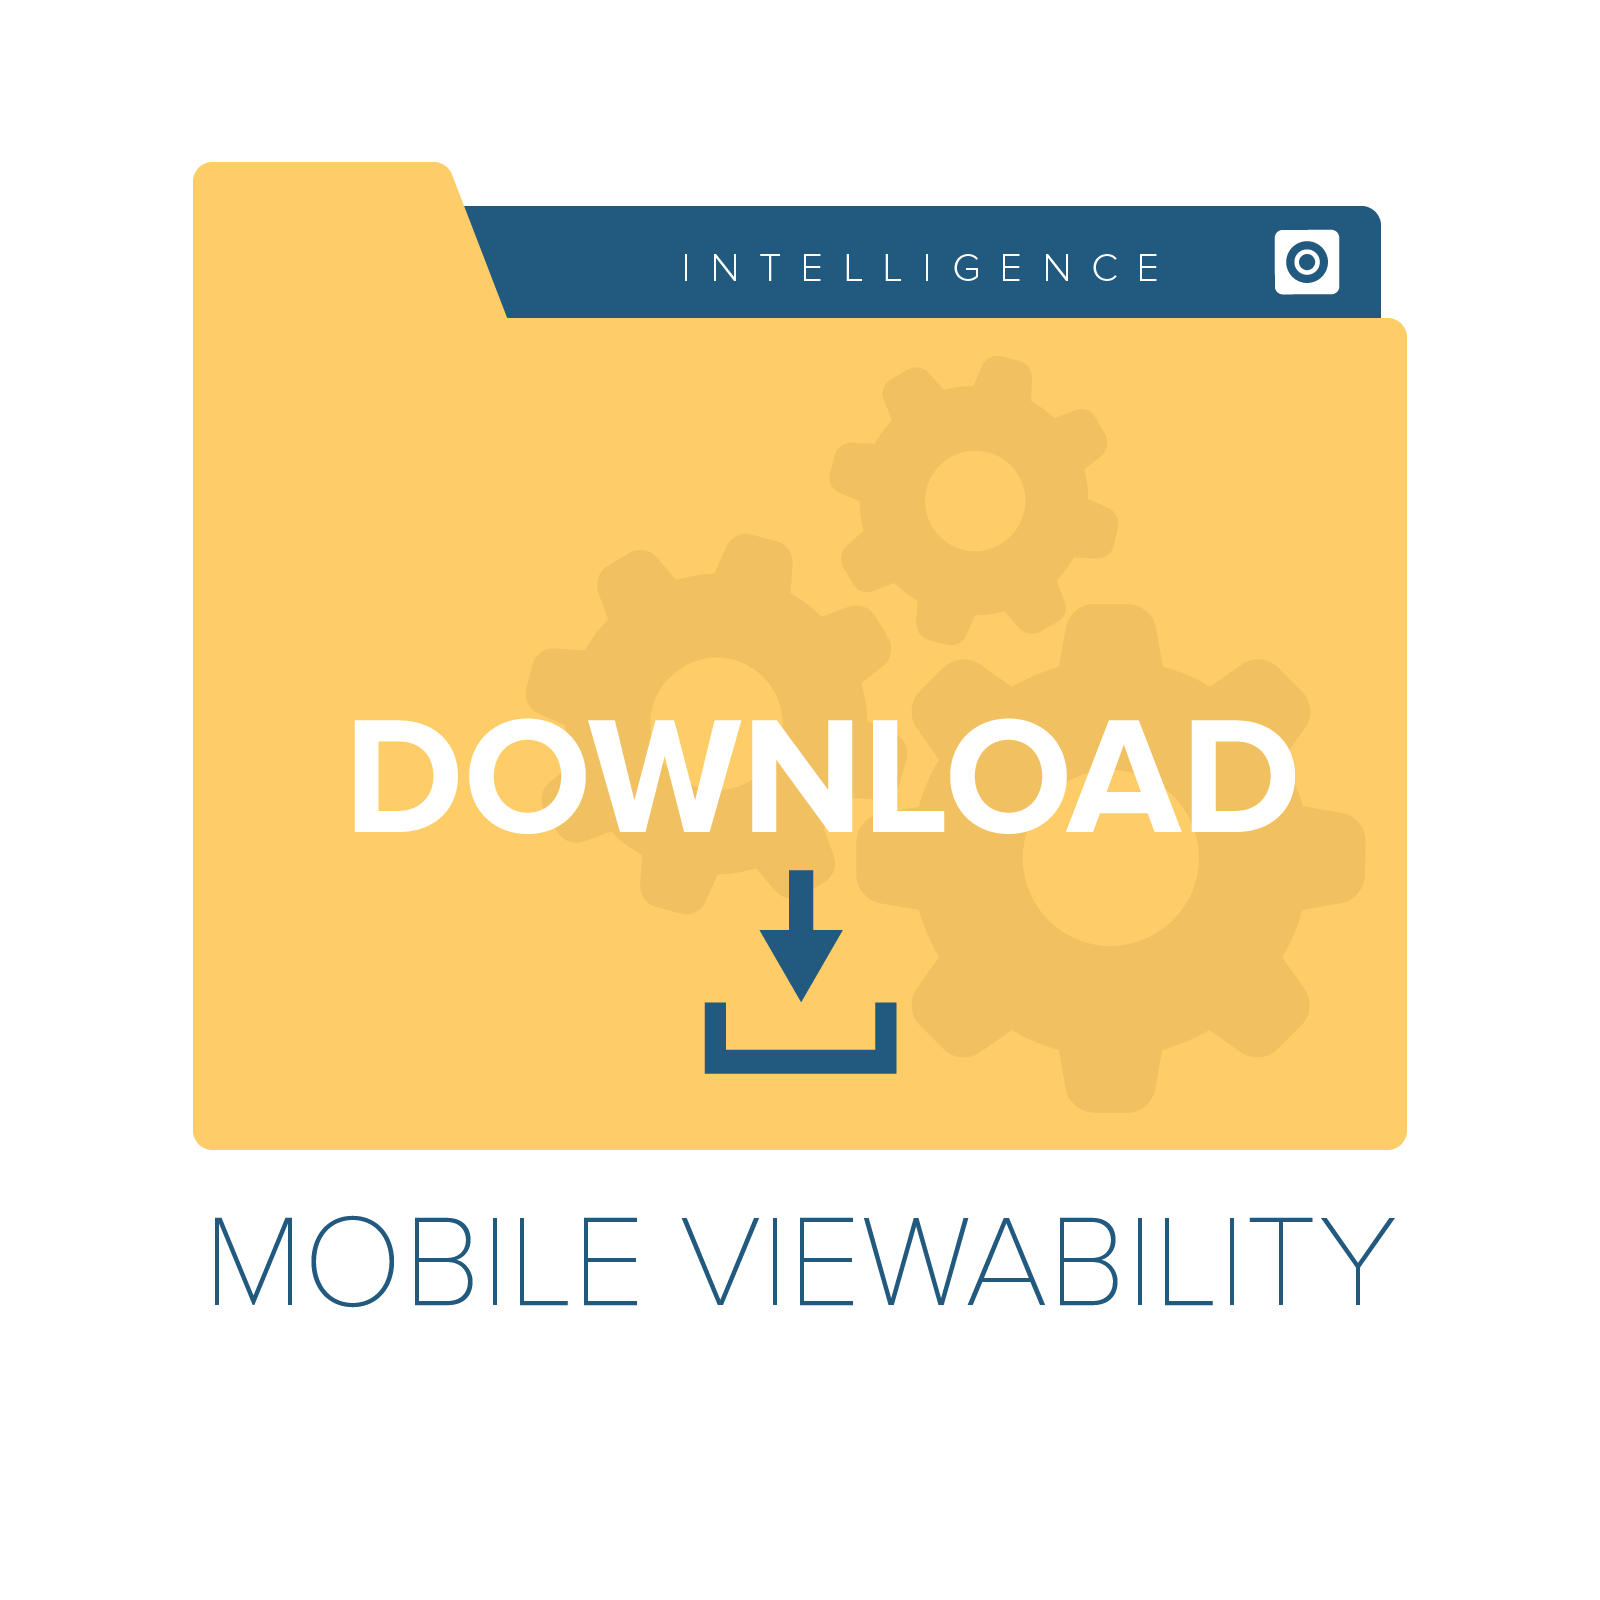 mobile-viewability.png